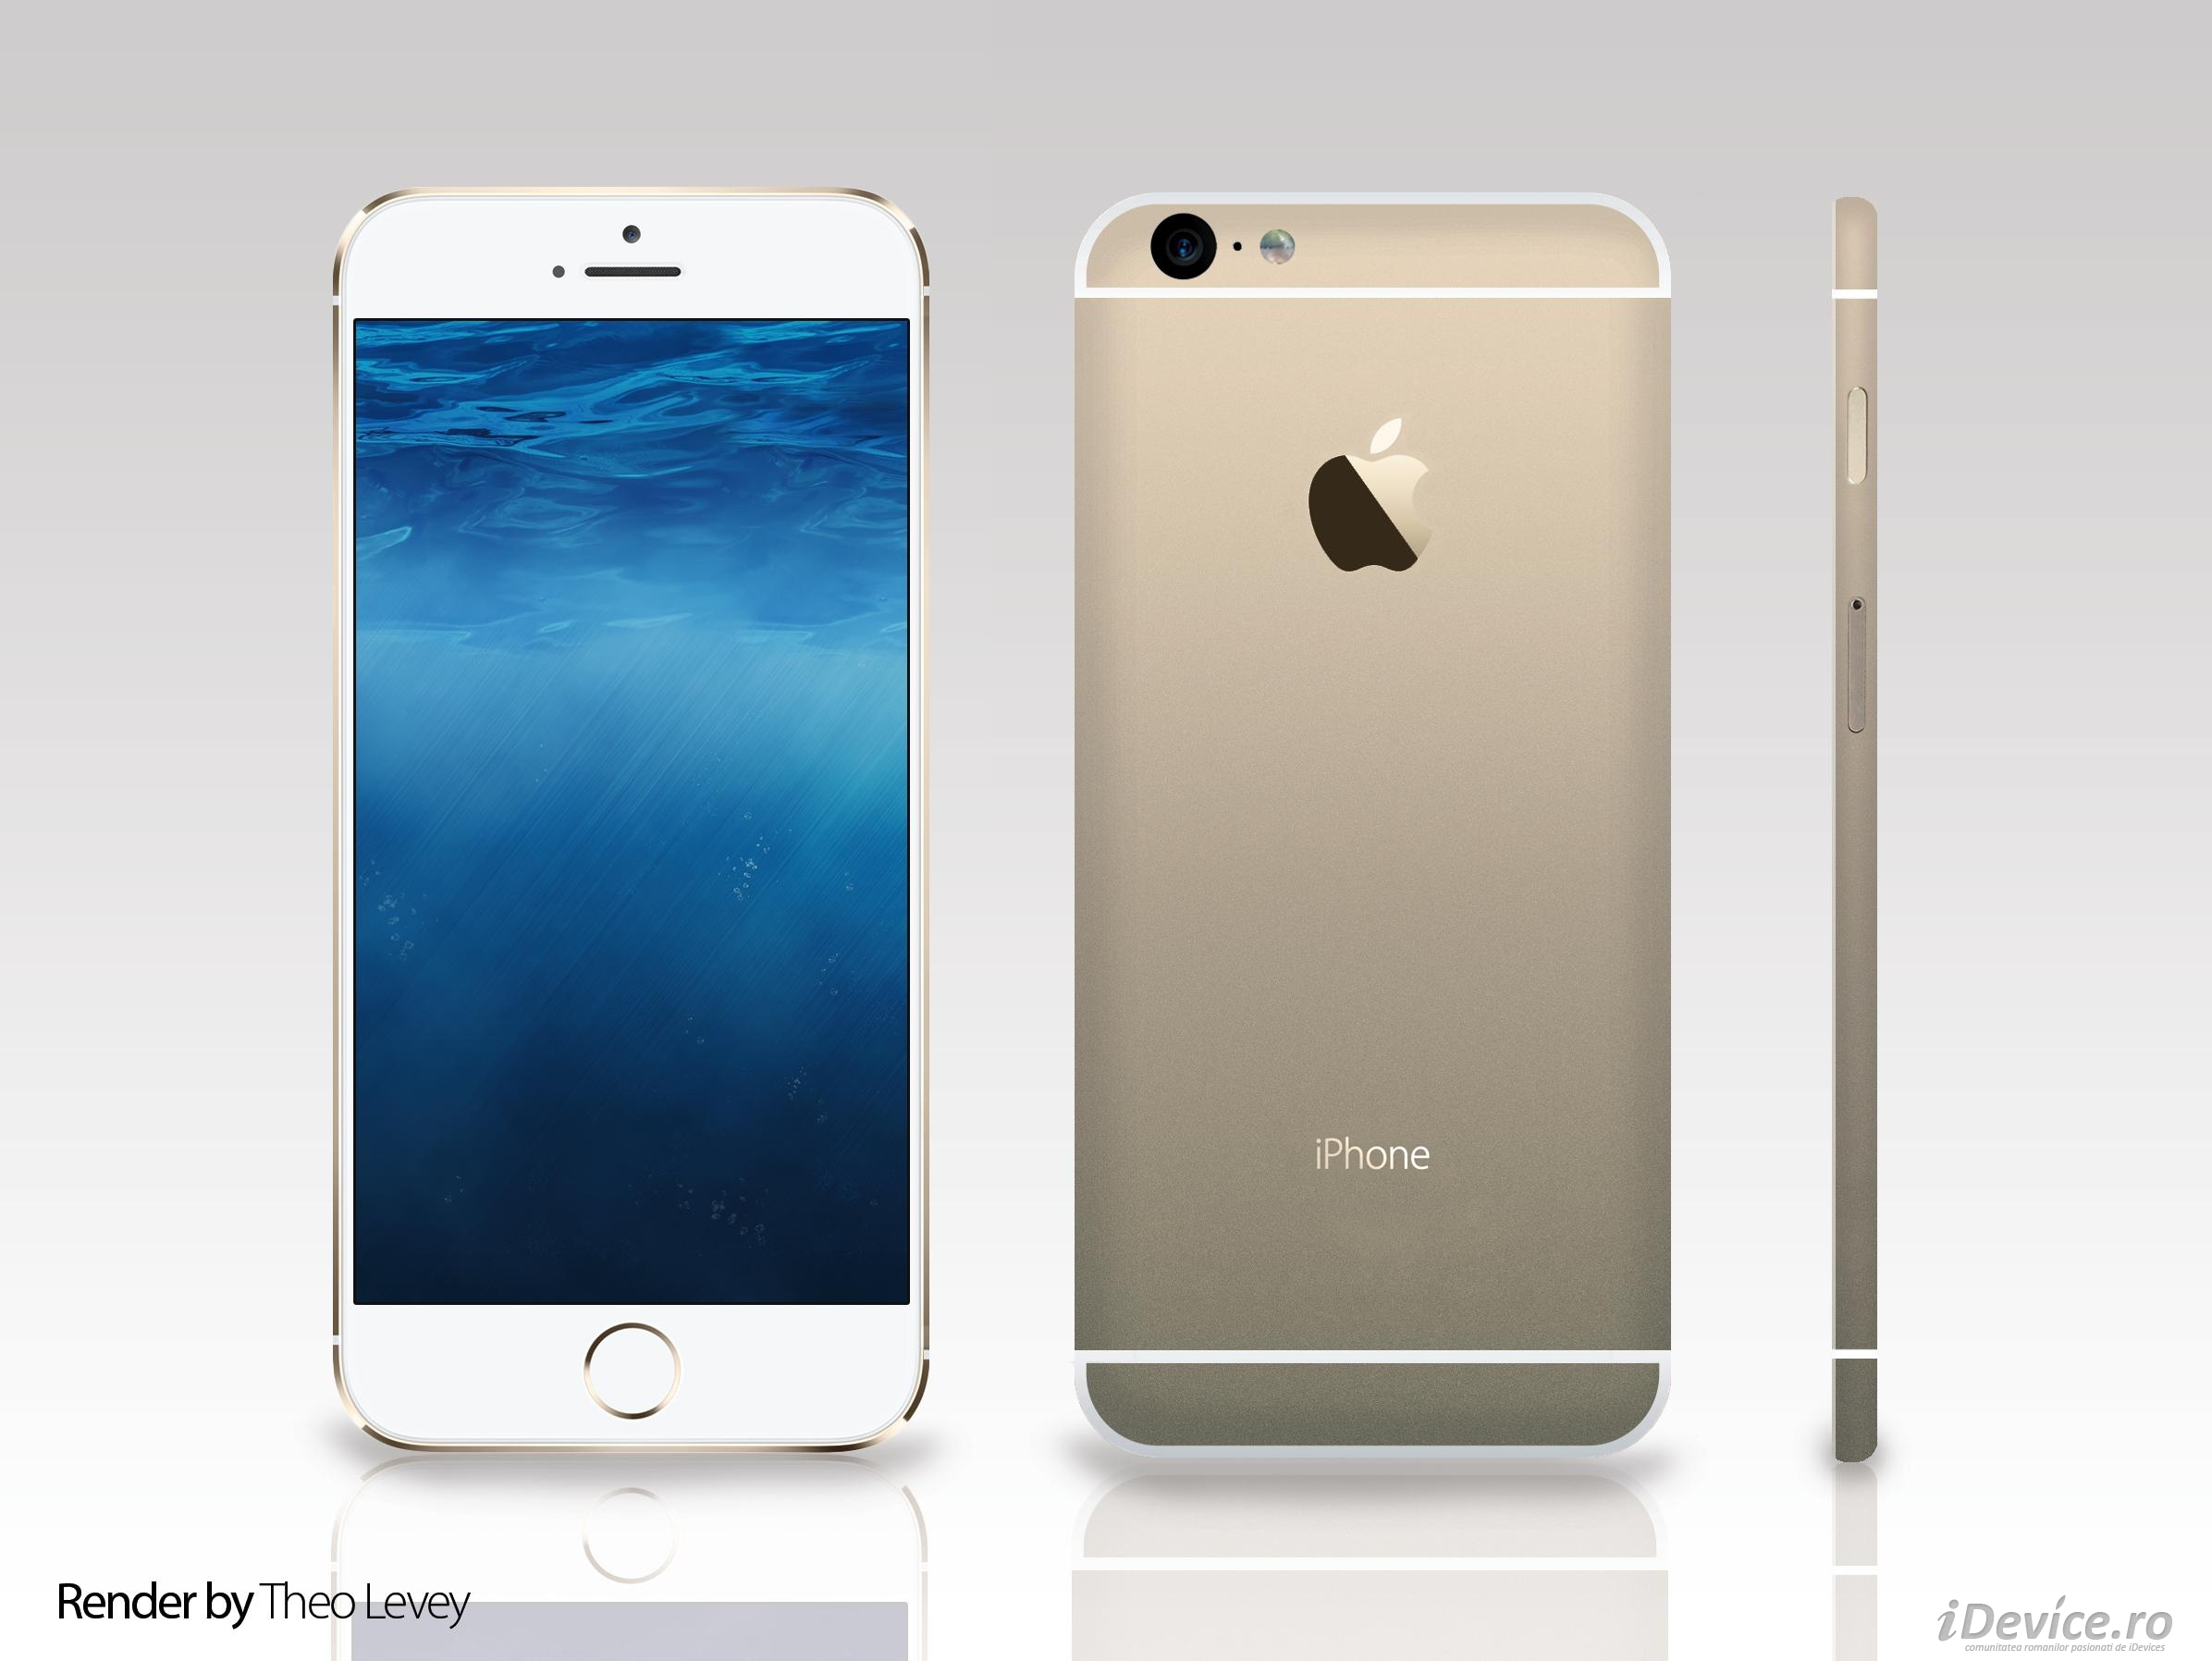 iPhone 6 concept real - iDevice.ro